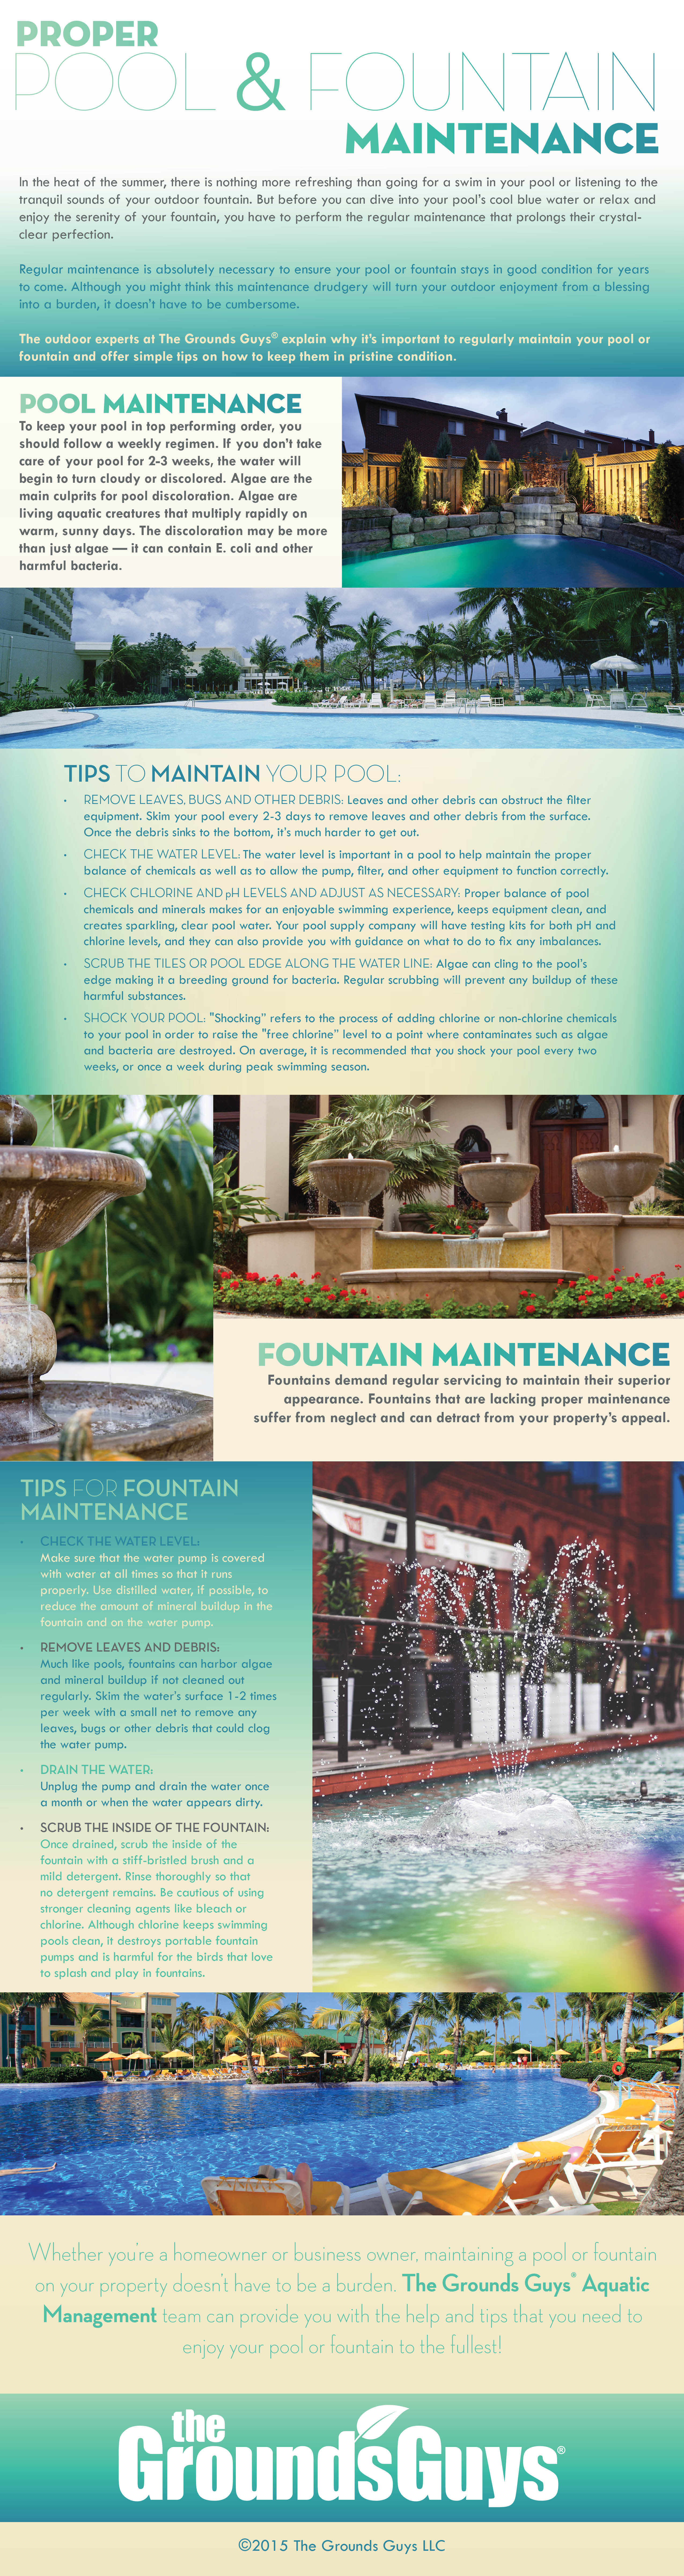 Proper Pool & Fountain Maintenance infographic